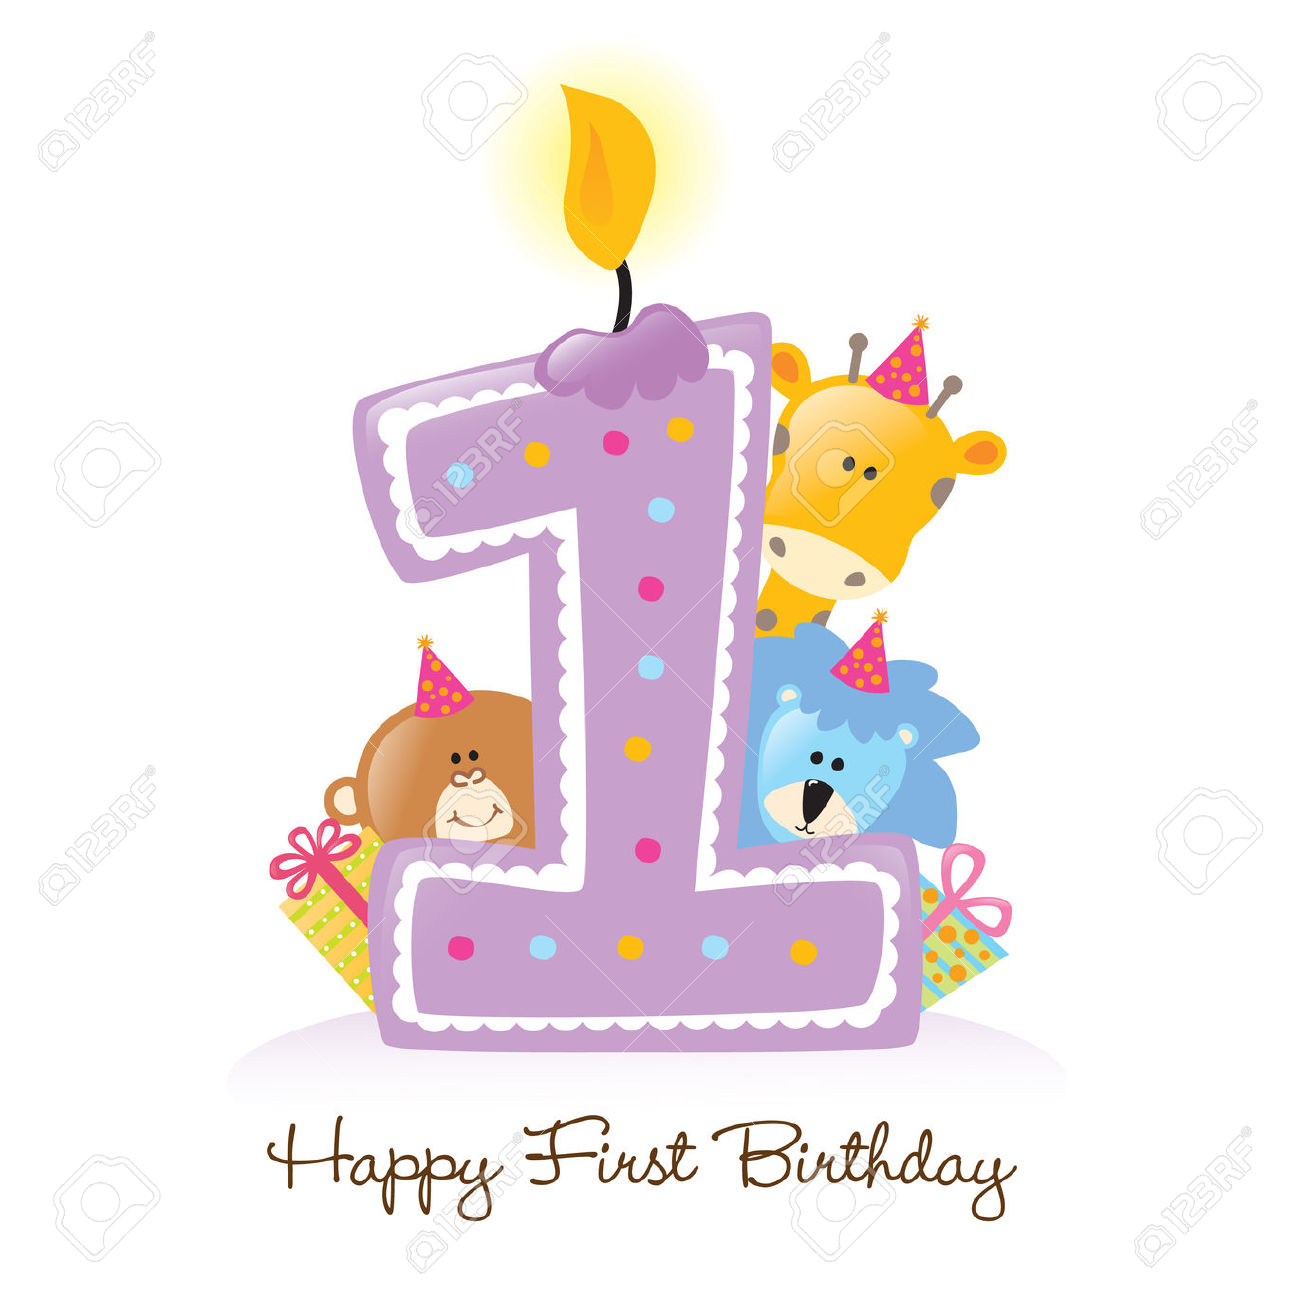 1st Birthday Free Clip Art. First Birthday Candle with .